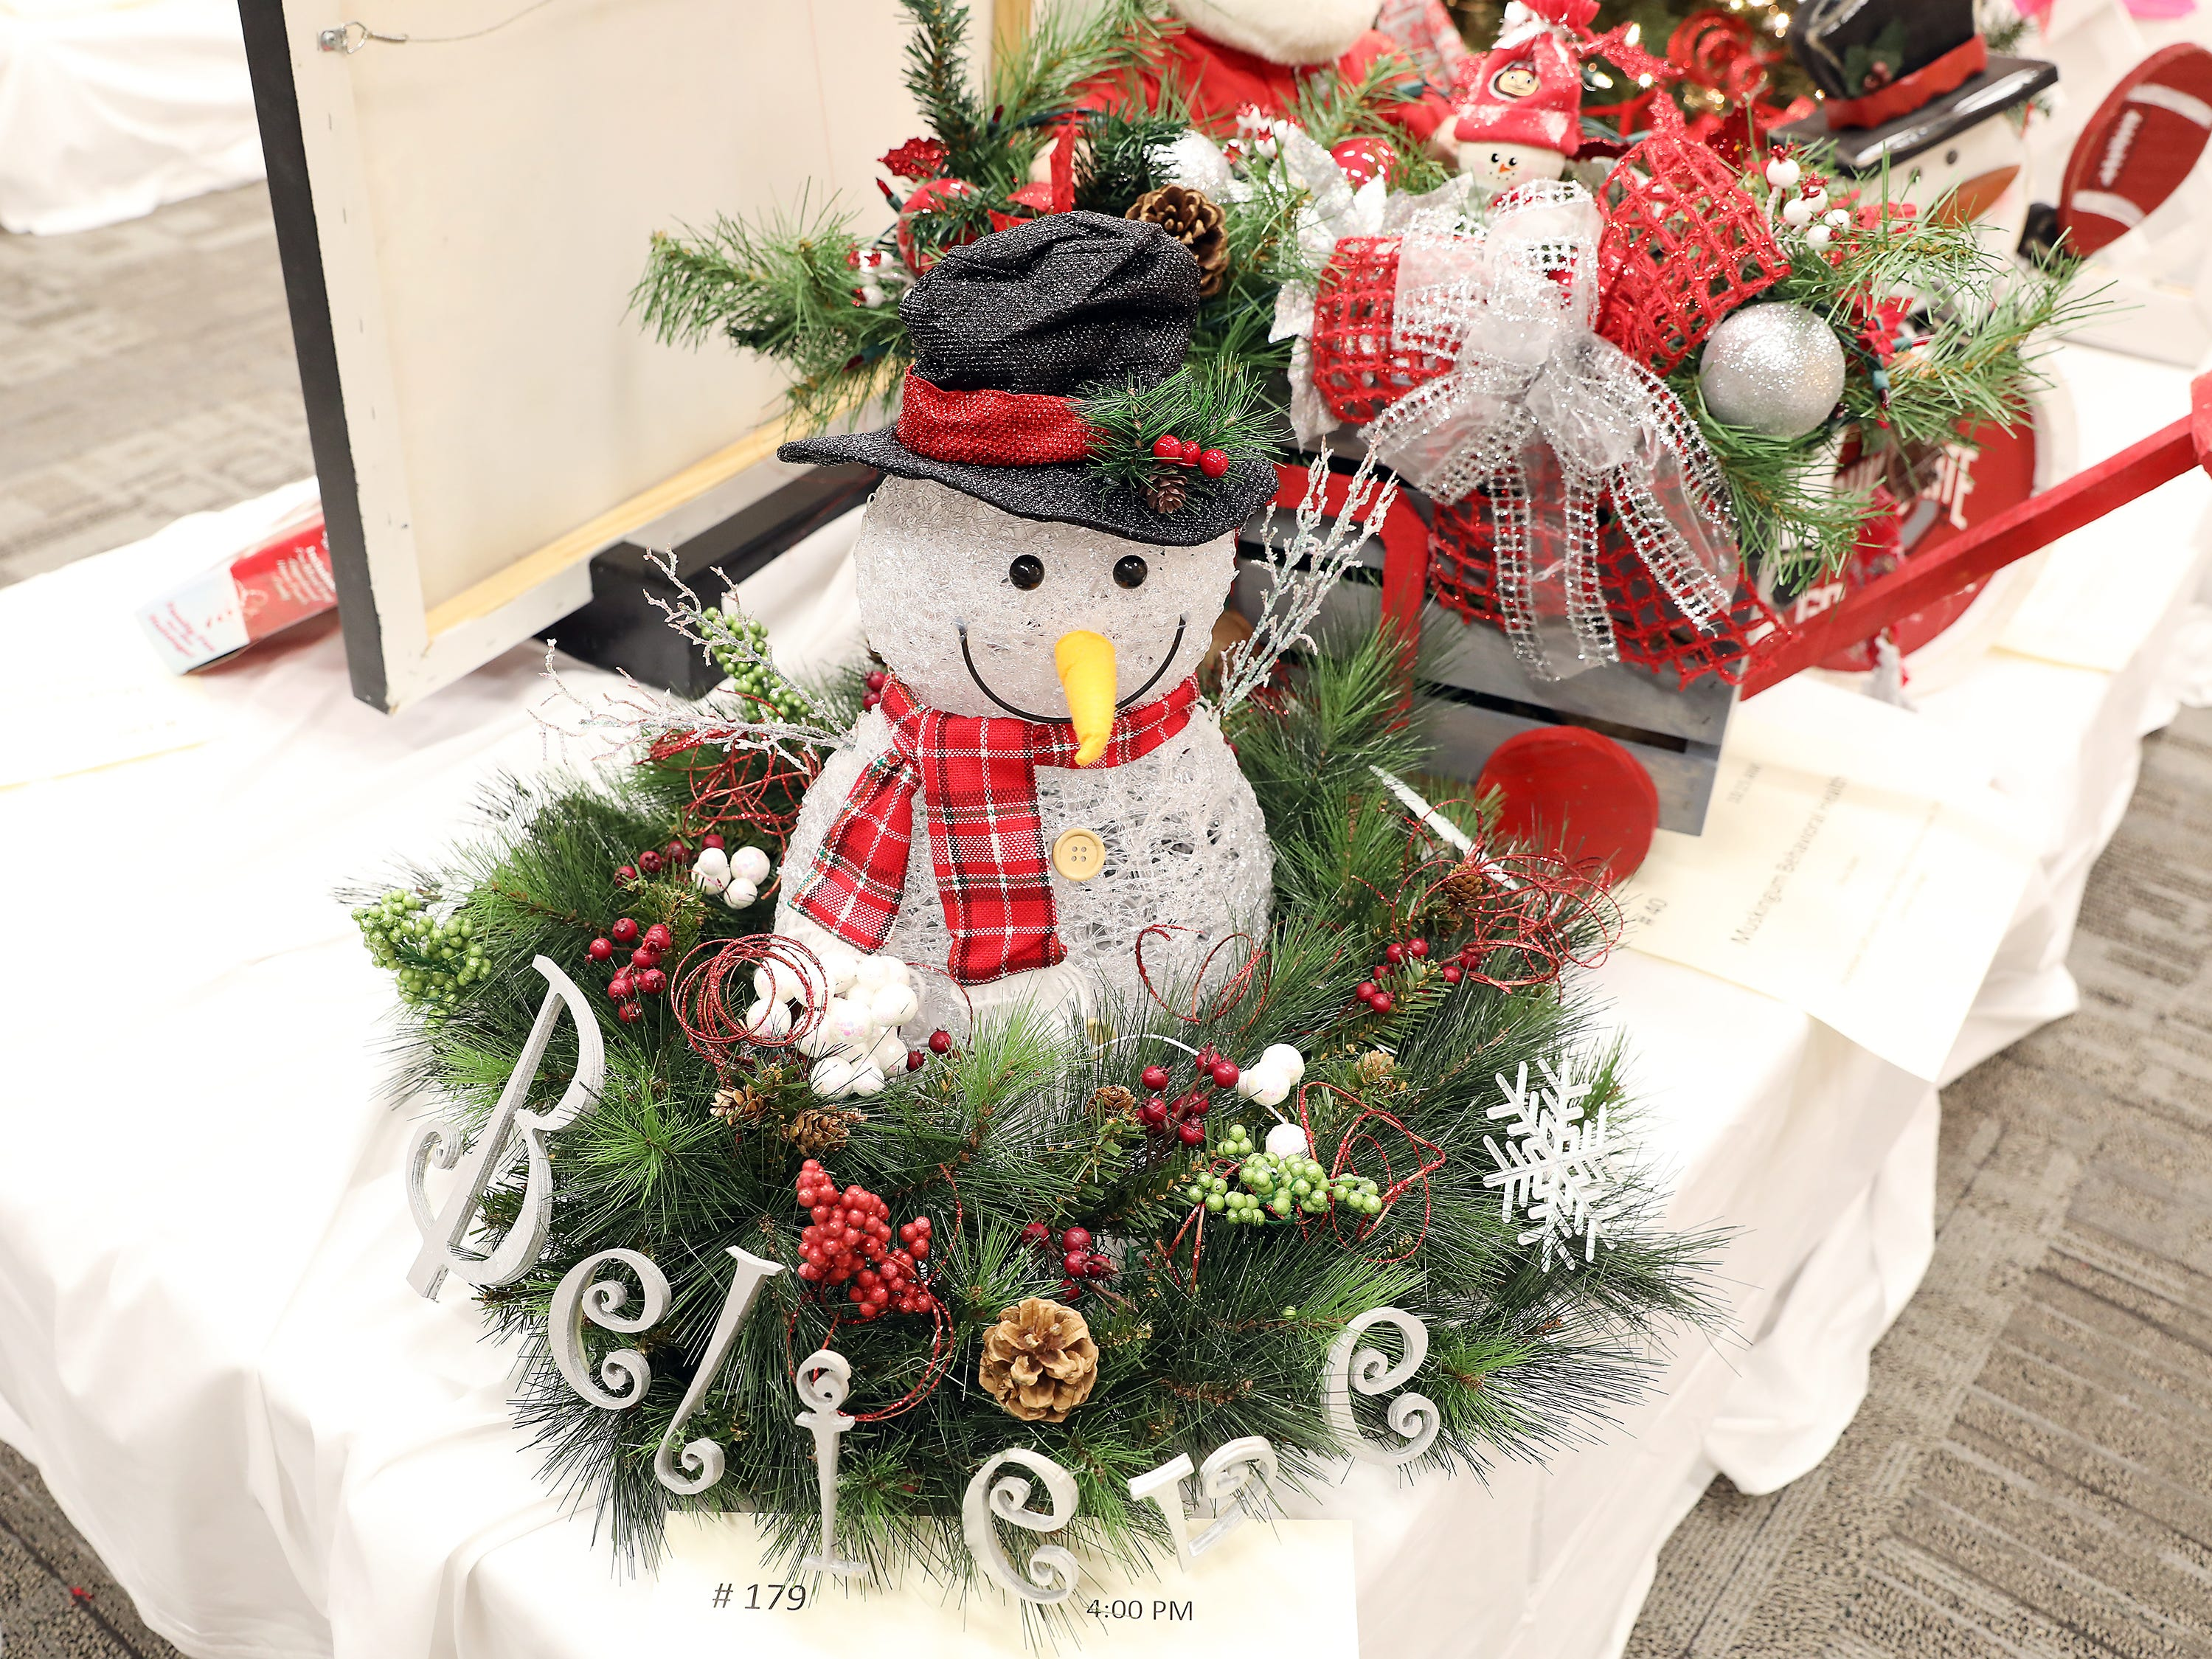 """1794:00 PMPeoples BankCenterpieceFrosty Magical Silent Night TourVibrant """"Frosty"""" centerpiece donned with festive holiday cheer!2 tickets to the """"The Not So Silent Night Tour"""" starring country music artist Phil Vassar and Lonestar at the Peoples Bank Theater on Wednesday, December 19, 2018 at 8:00pm"""